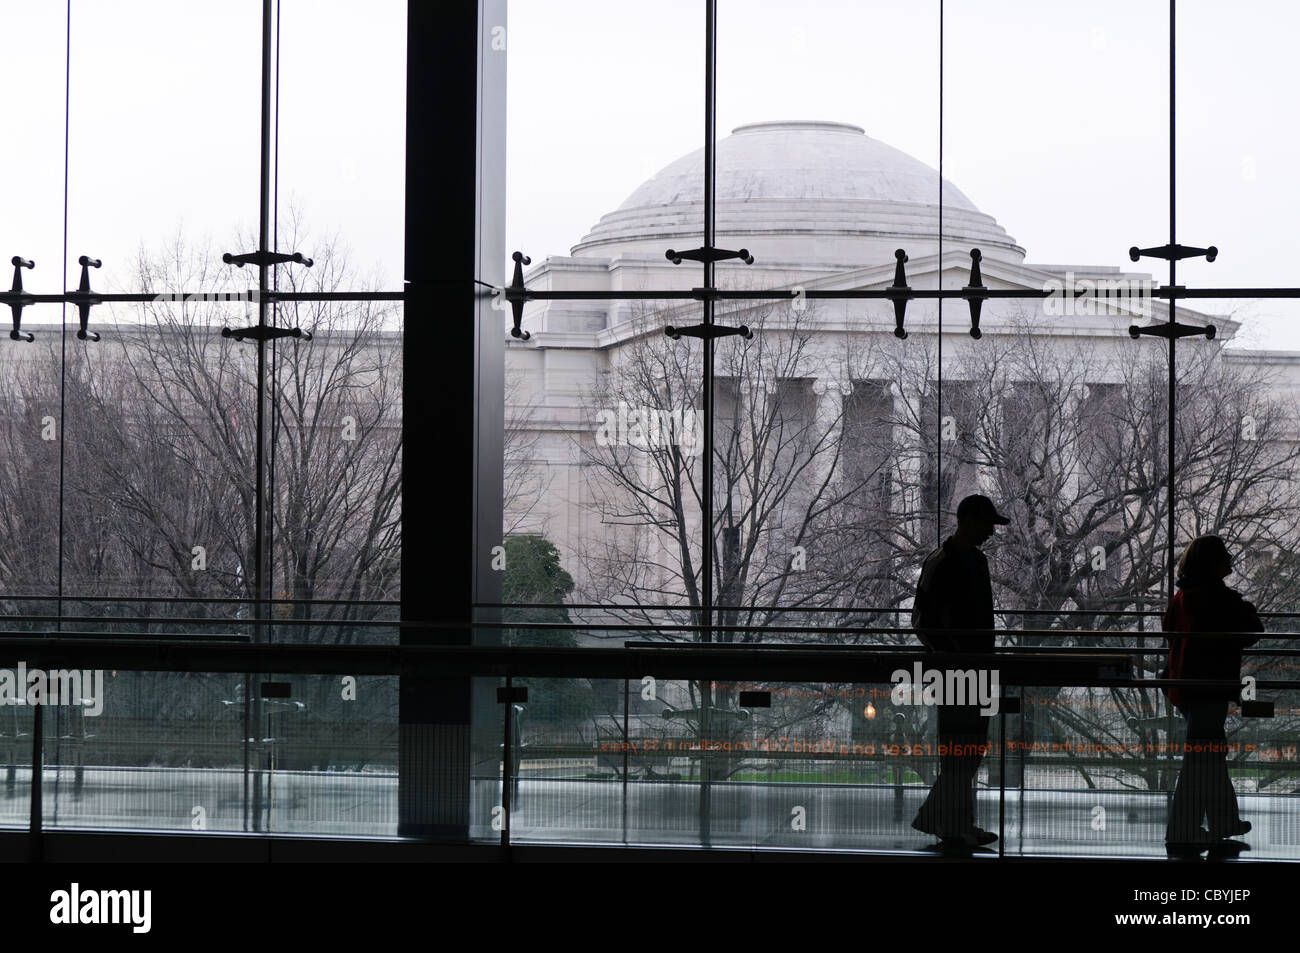 WASHINGTON DC, USA - The National Gallery of Art building as seen through the glass panels of the Newseum across - Stock Image